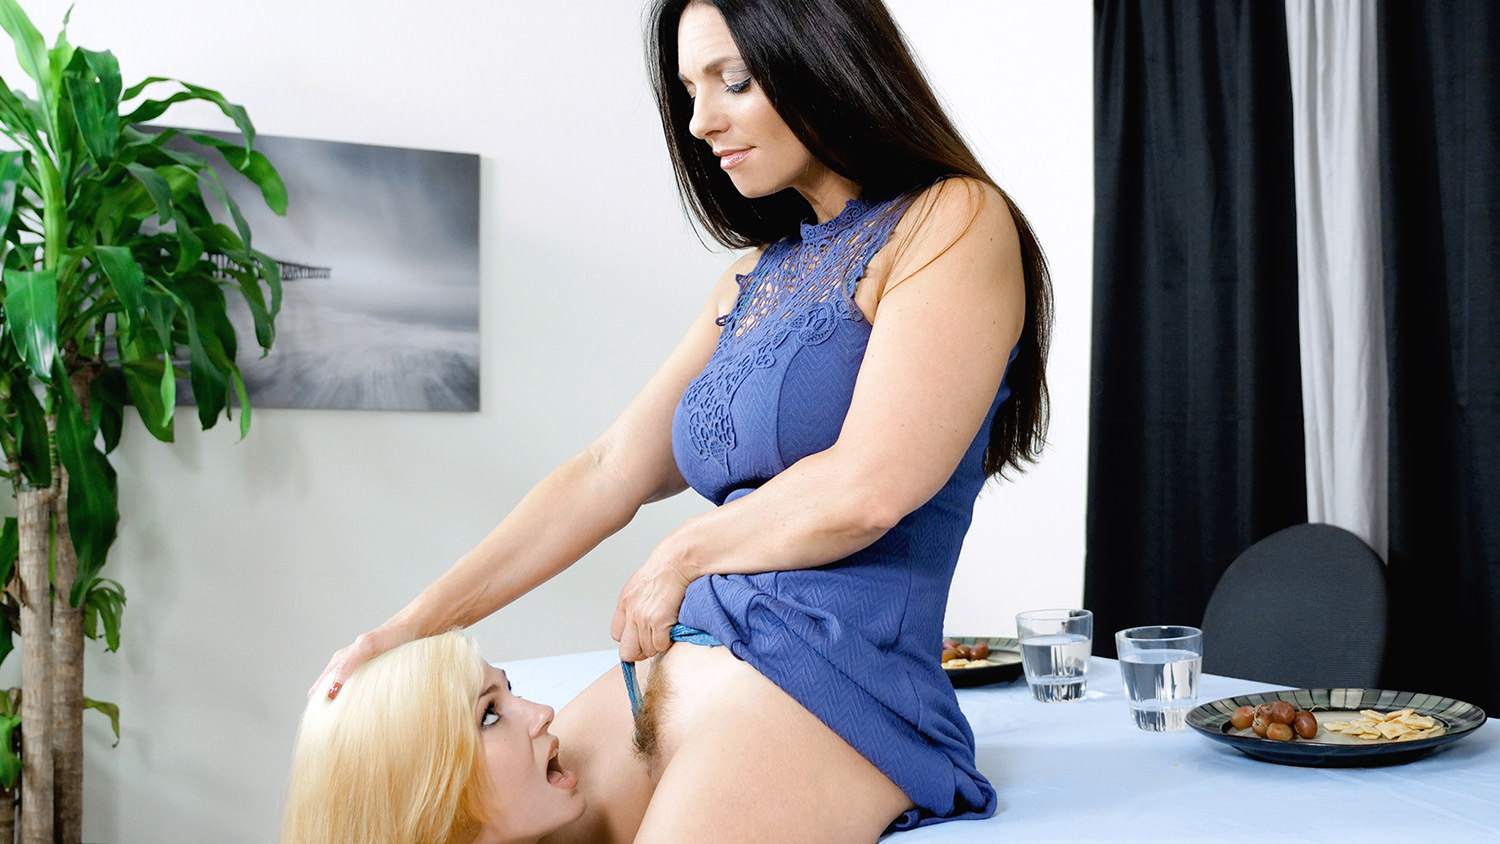 Pervmom alexis fawx in Becoming The Cool Stepmom Pervmom – alexis fawx in Becoming The Cool Stepmom WEB-DL 1080p h.264 TEAM_AIR